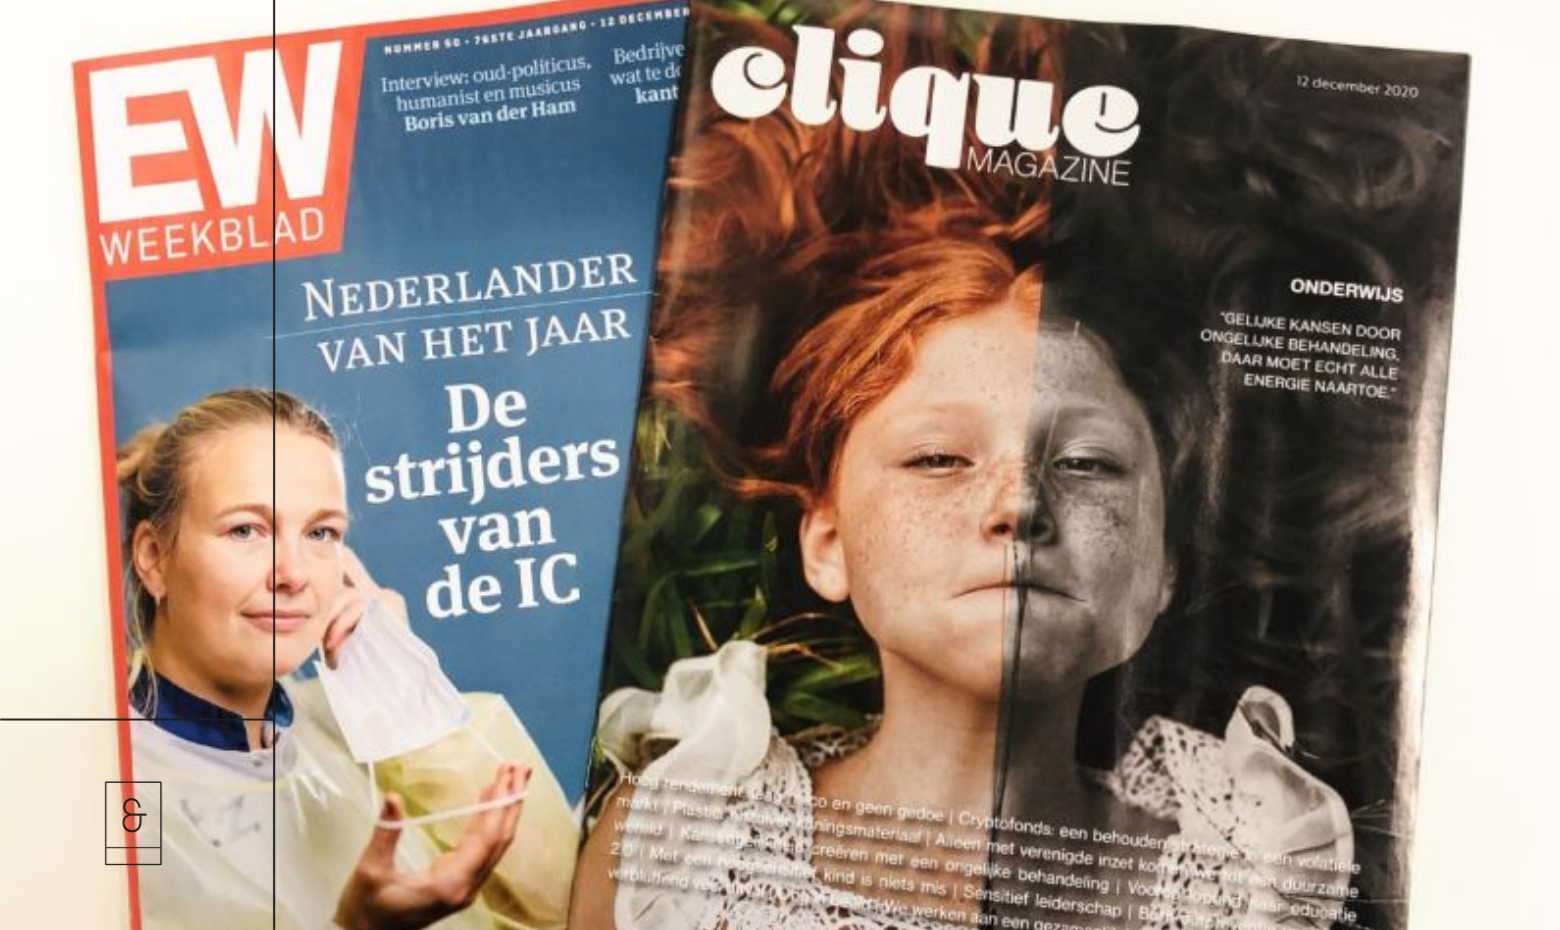 HSP en Werk in Elsevier weekblad clique magazine